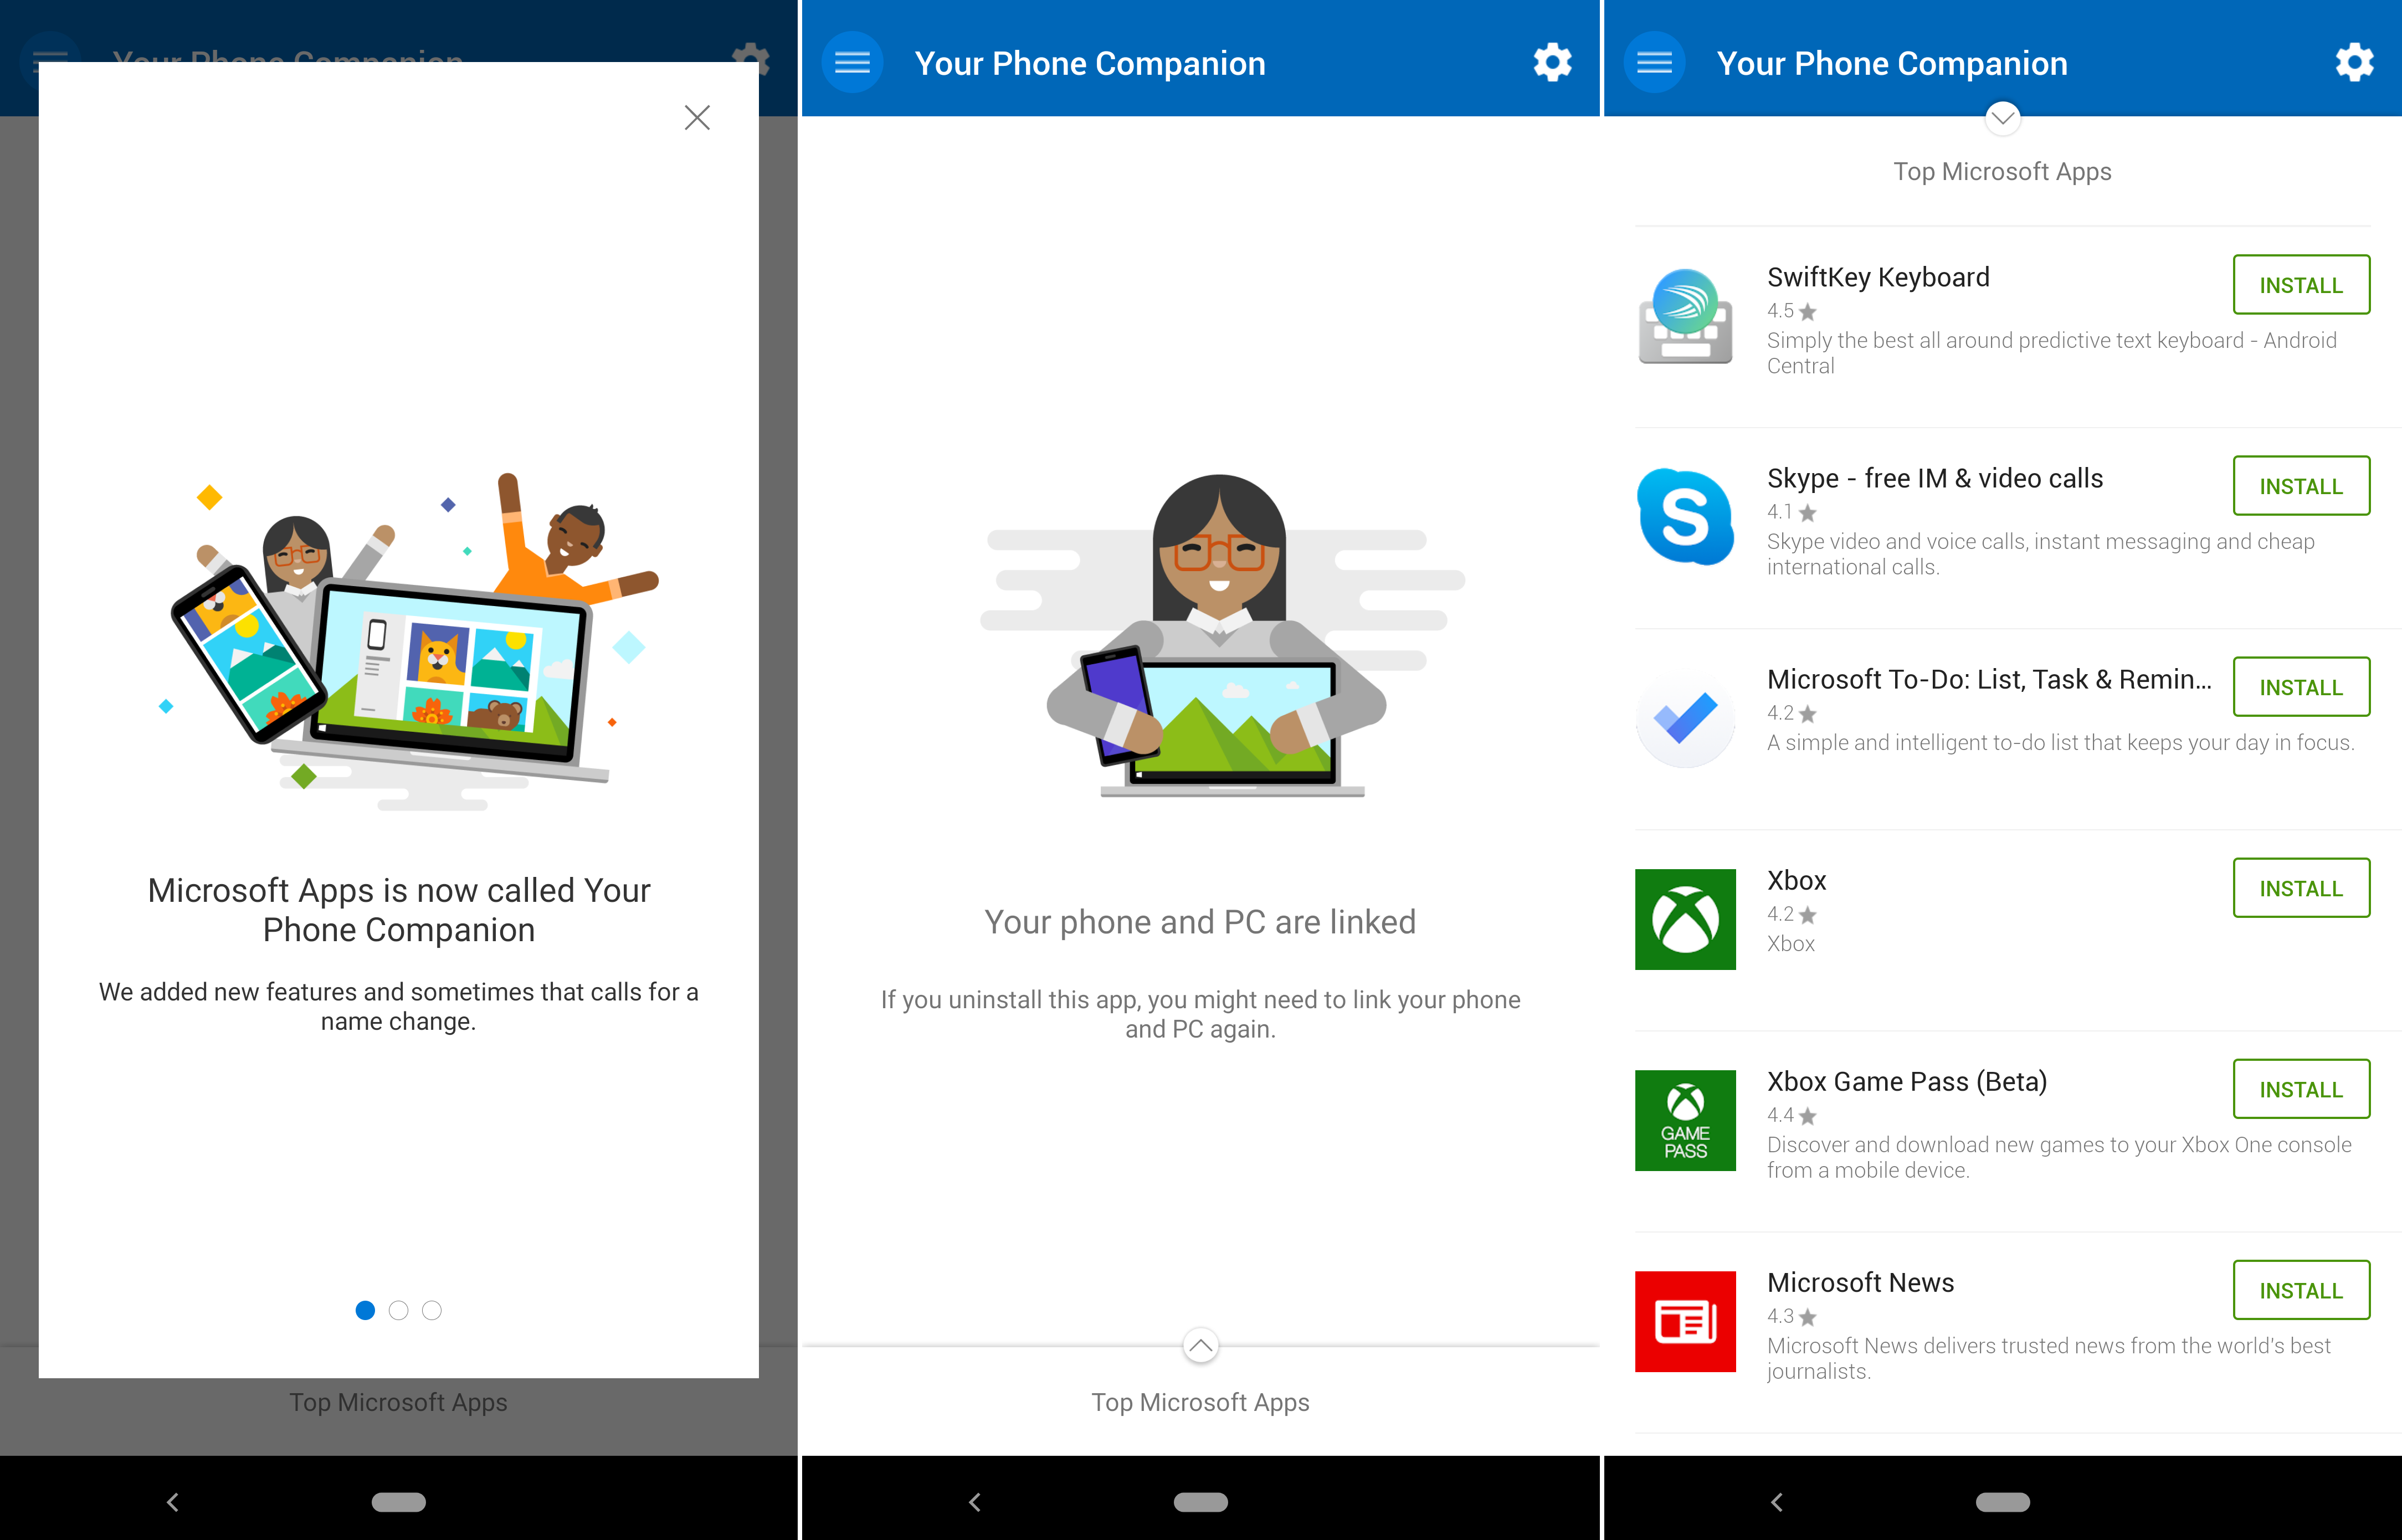 Microsoft rebrands Microsoft Apps on Android to Your Phone